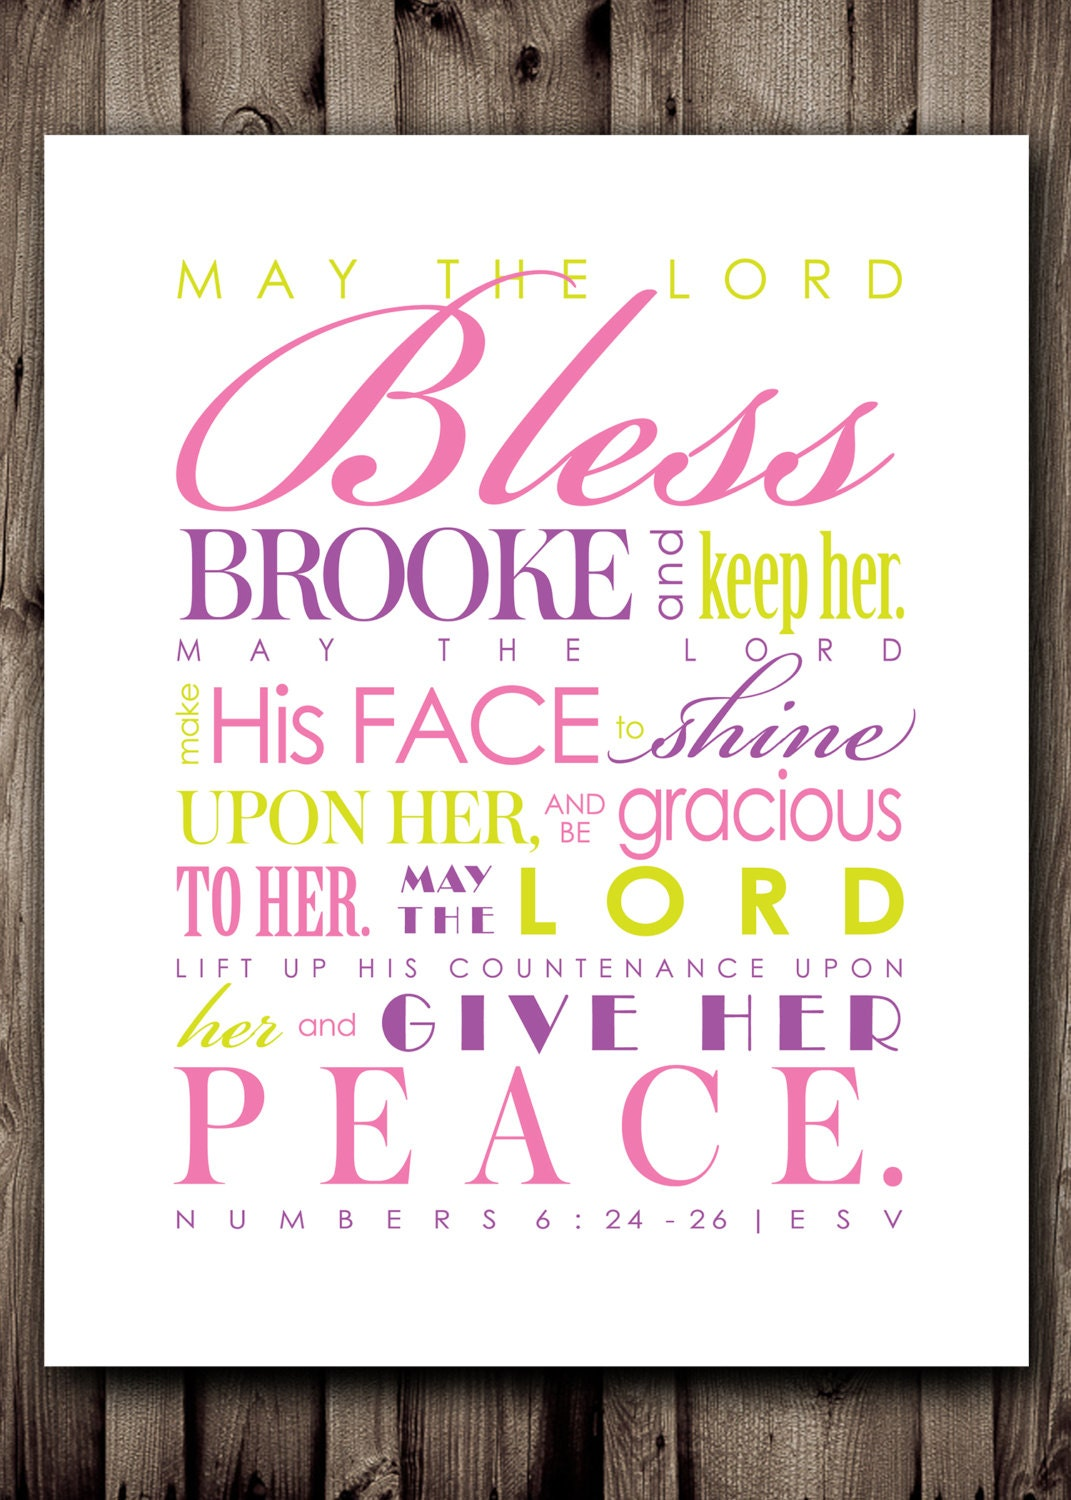 Dorm Room Wall Decor Etsy : Dorm room decor personalized scripture wall art digital